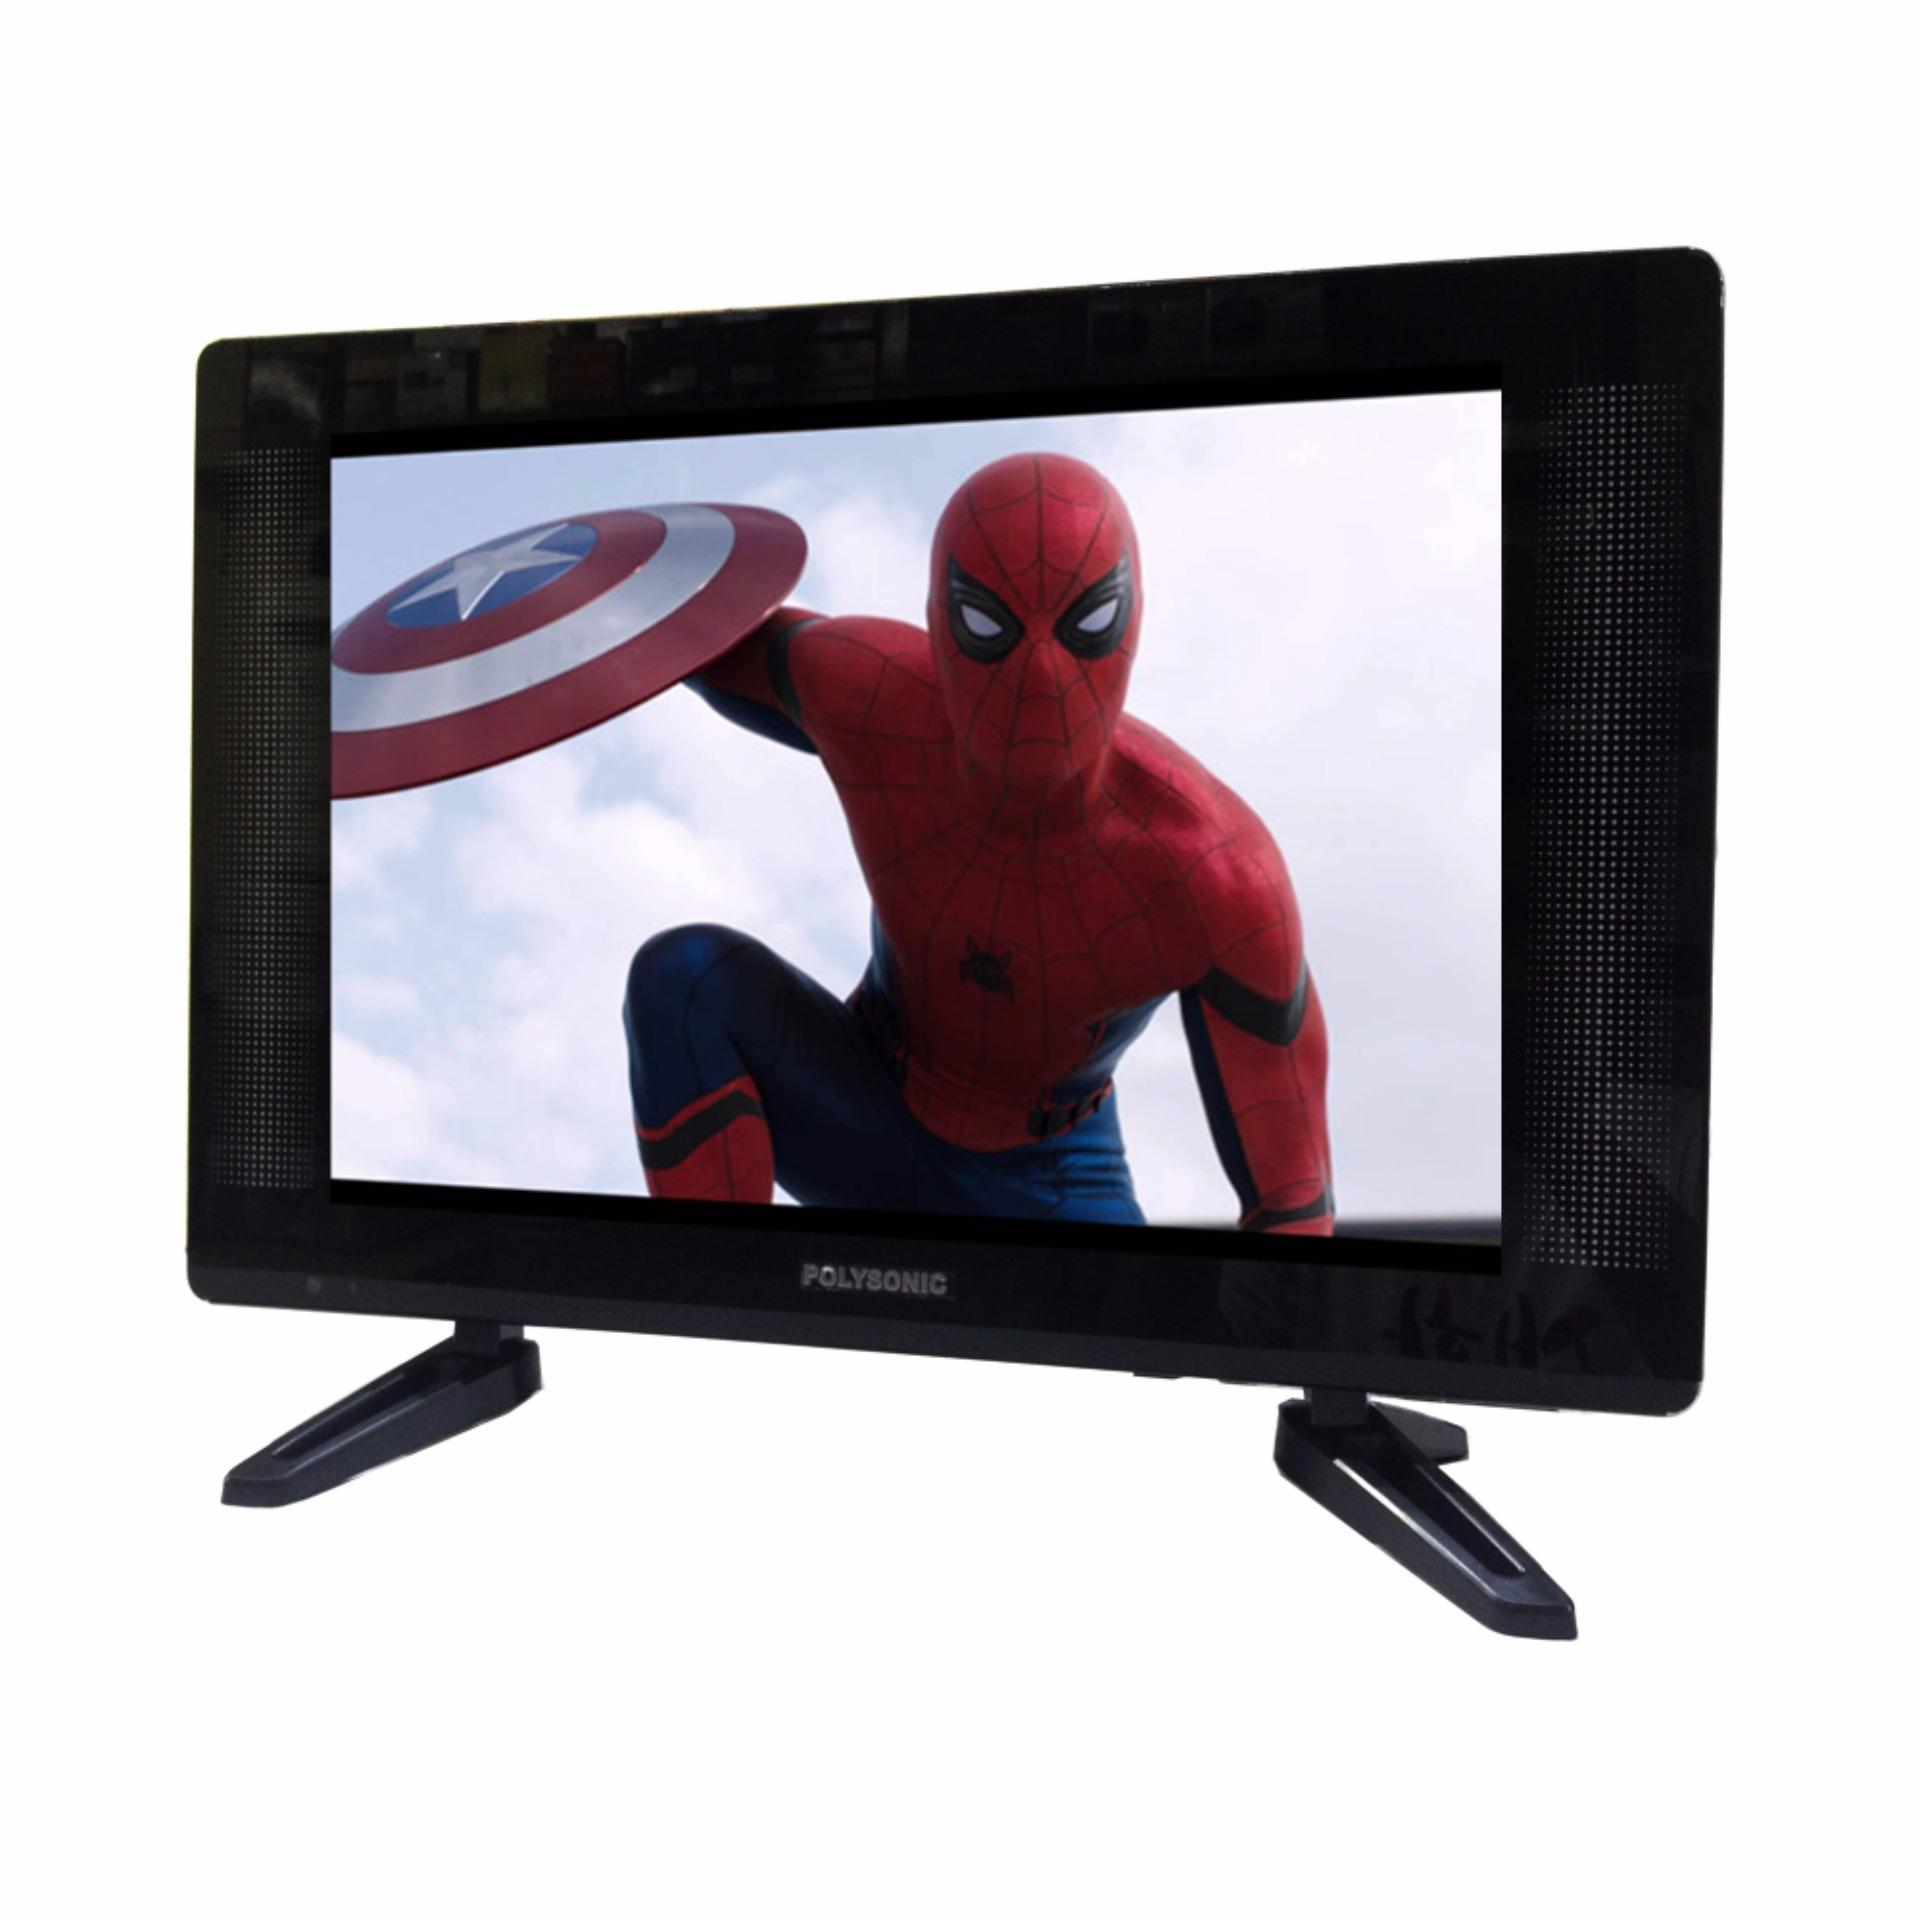 ... LED TV 22 inch Polysonic PS2295 Wide - Hitam ...